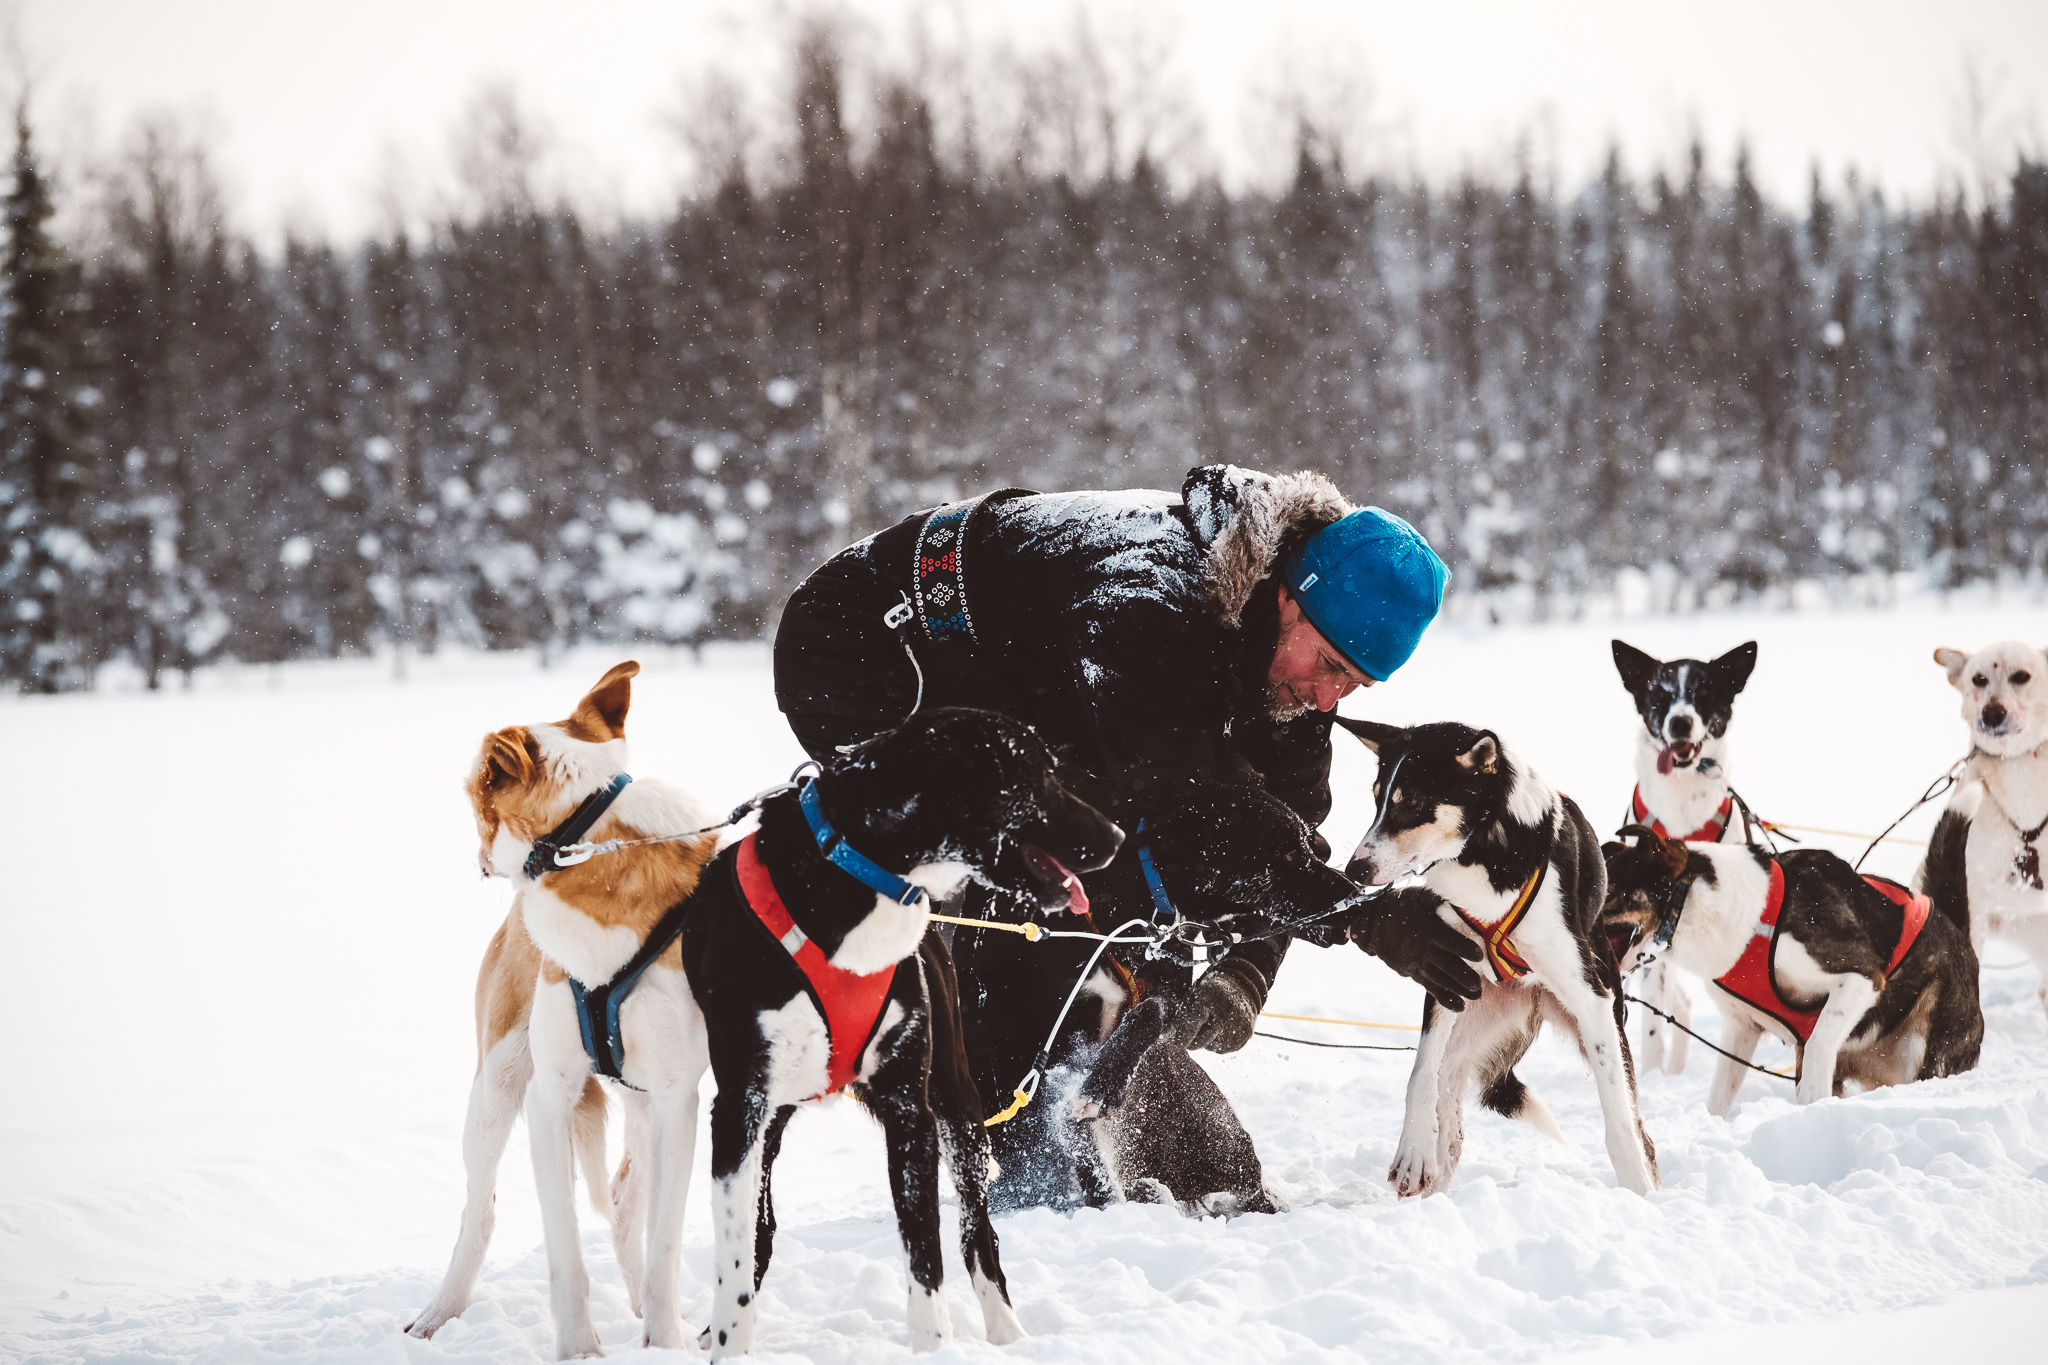 Andi Weiland With sledge dogs in Lappland